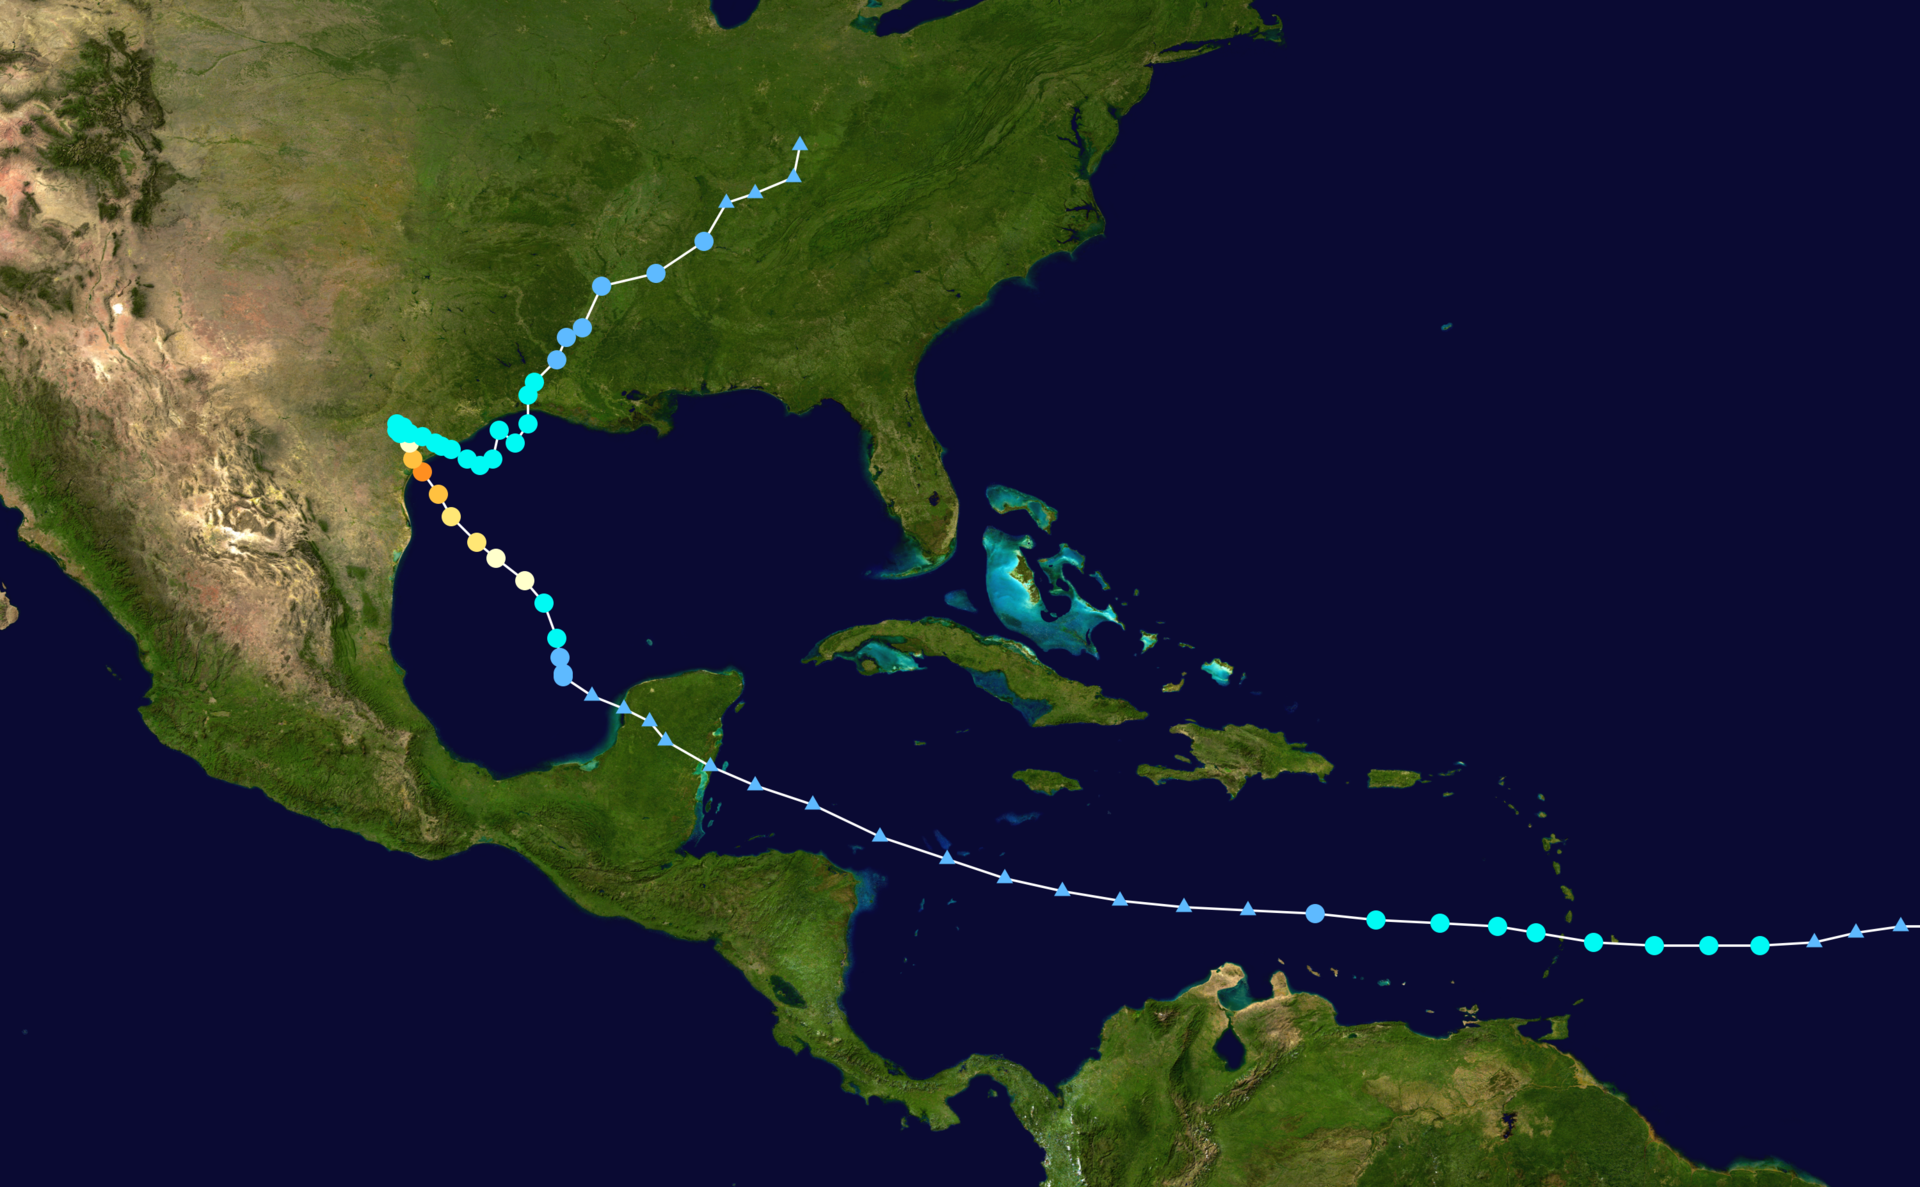 hurricane forecasting Hurricane forecast computer models by dr jeff masters, director of meteorology the behavior of the atmosphere is governed by physical laws which can be expressed as mathematical equations.